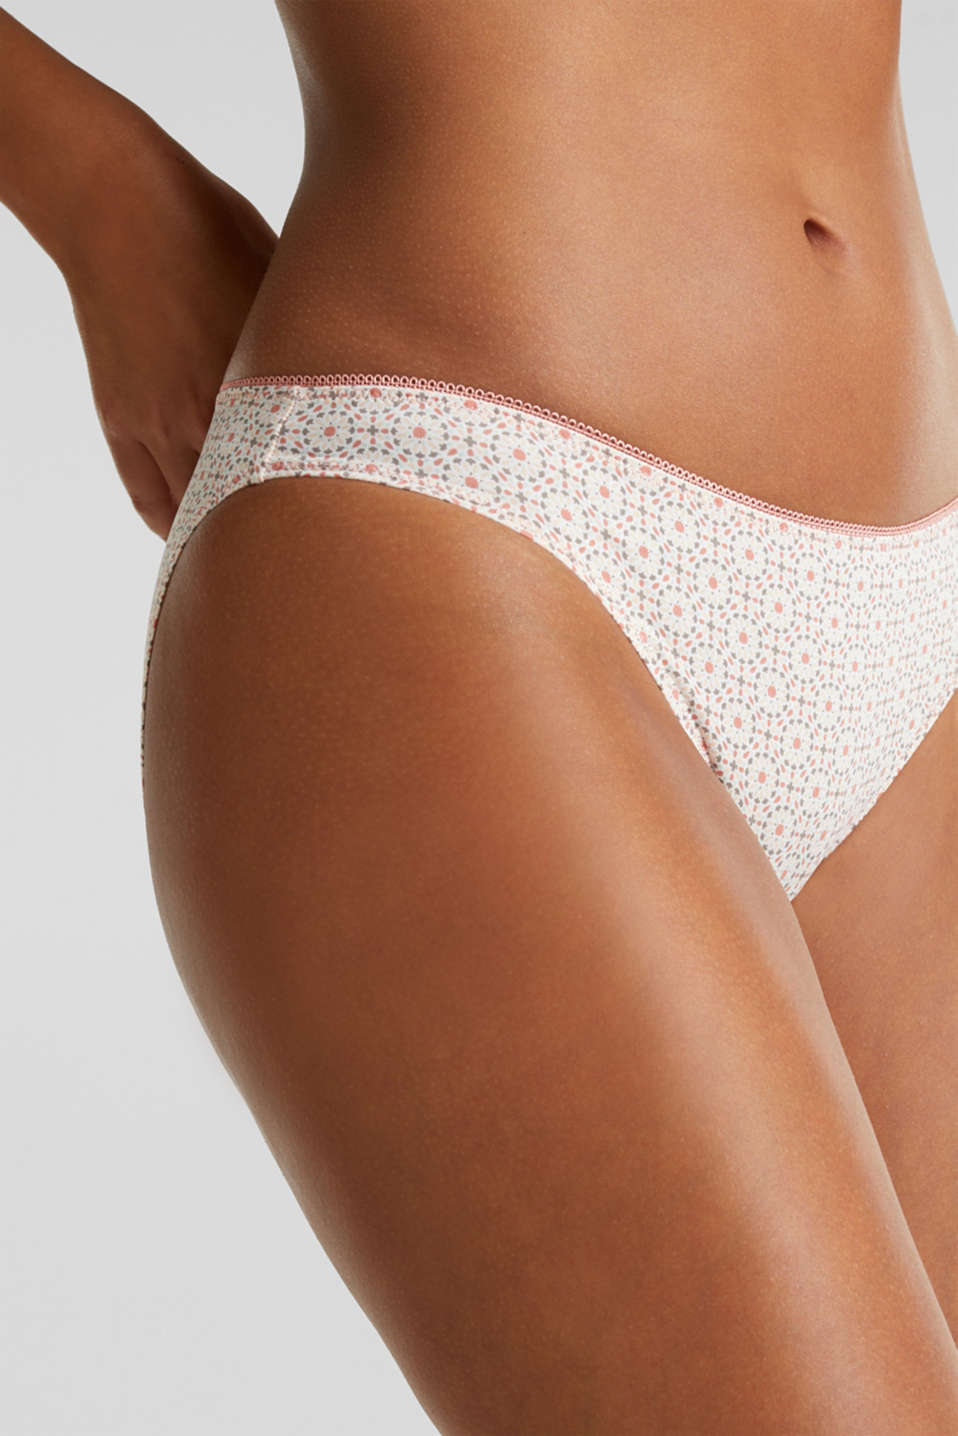 Double pack: Printed hipster briefs, LIGHT TAUPE, detail image number 1